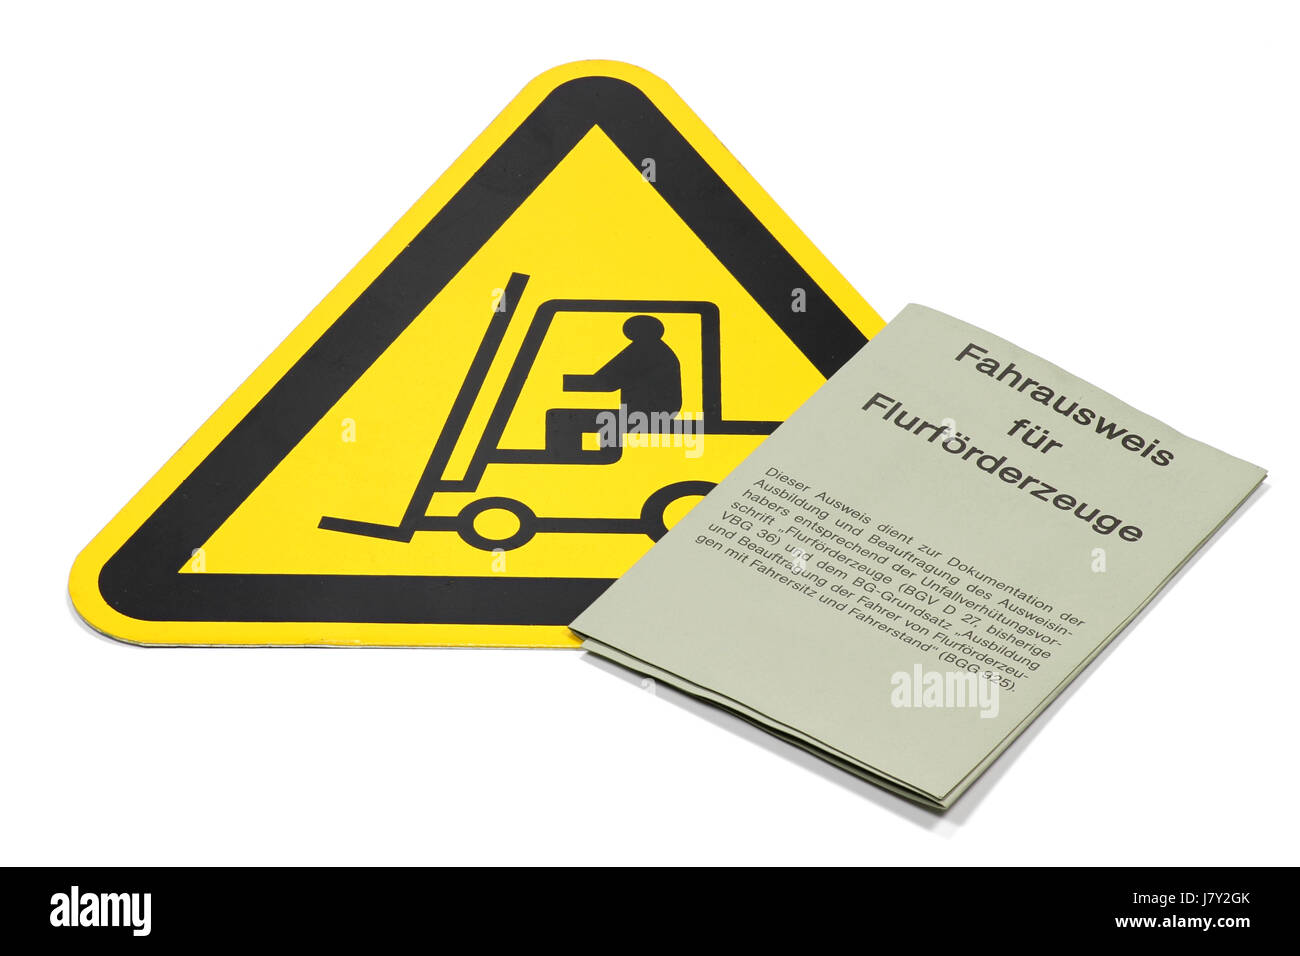 German driving license for forklift trucks isolated on white background Stock Photo